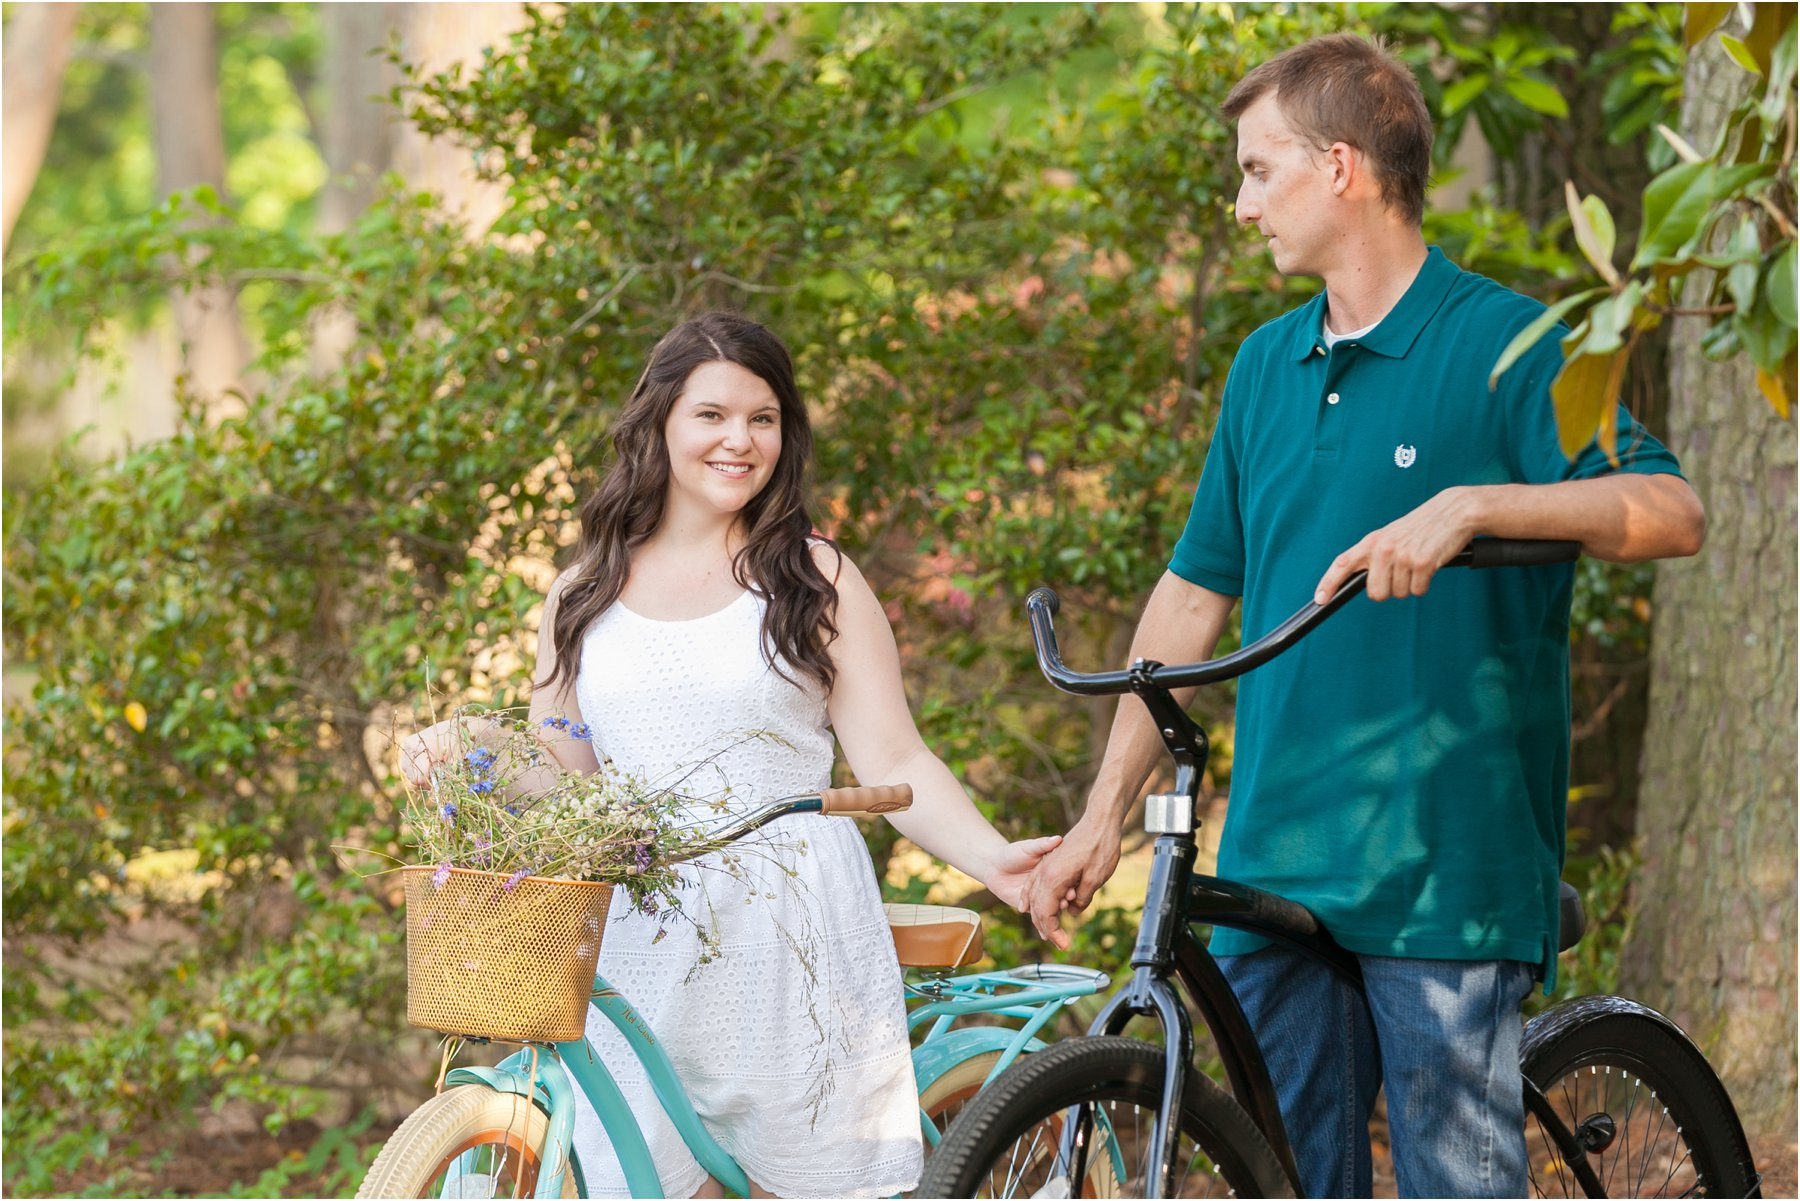 engagement_Photography_bike_ride_engagements_Jessica_Ryan_Photography_virginia_virginia_beach_0320